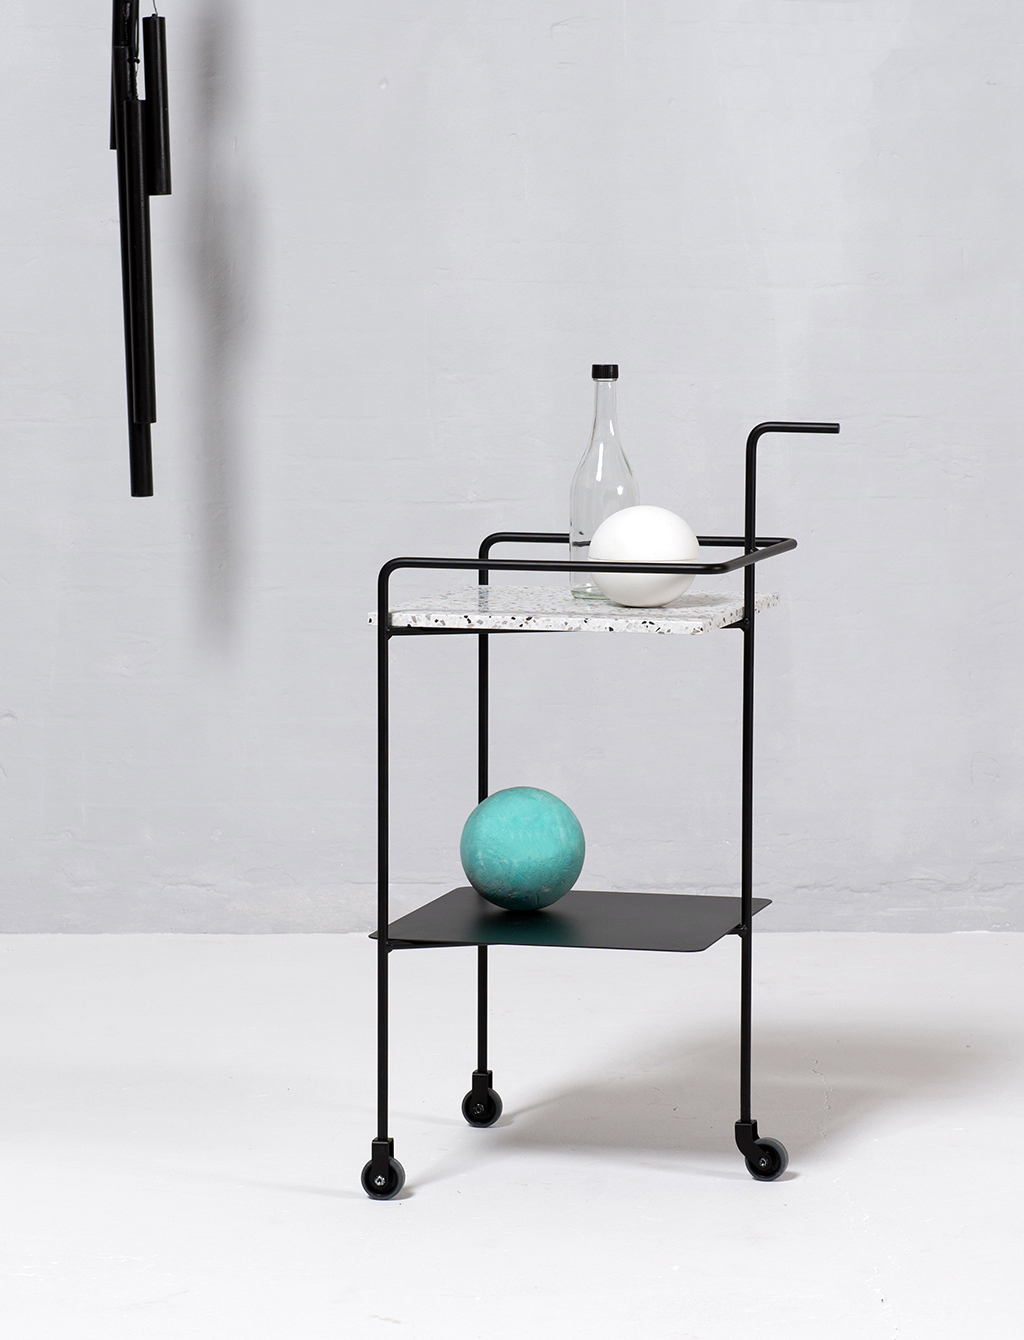 Confetti Trolley - <p>The Confetti Trolley is a reinterpretation of the classic mid-century drinks trolley by a Turkish architect & designer Derya Arpac. The design pairs a custom Terrazzo top with a powder coated steel frame. It makes a perfect companion for afternoon cocktails; or - a simple and sturdy side table.</p>  | Matter of Stuff